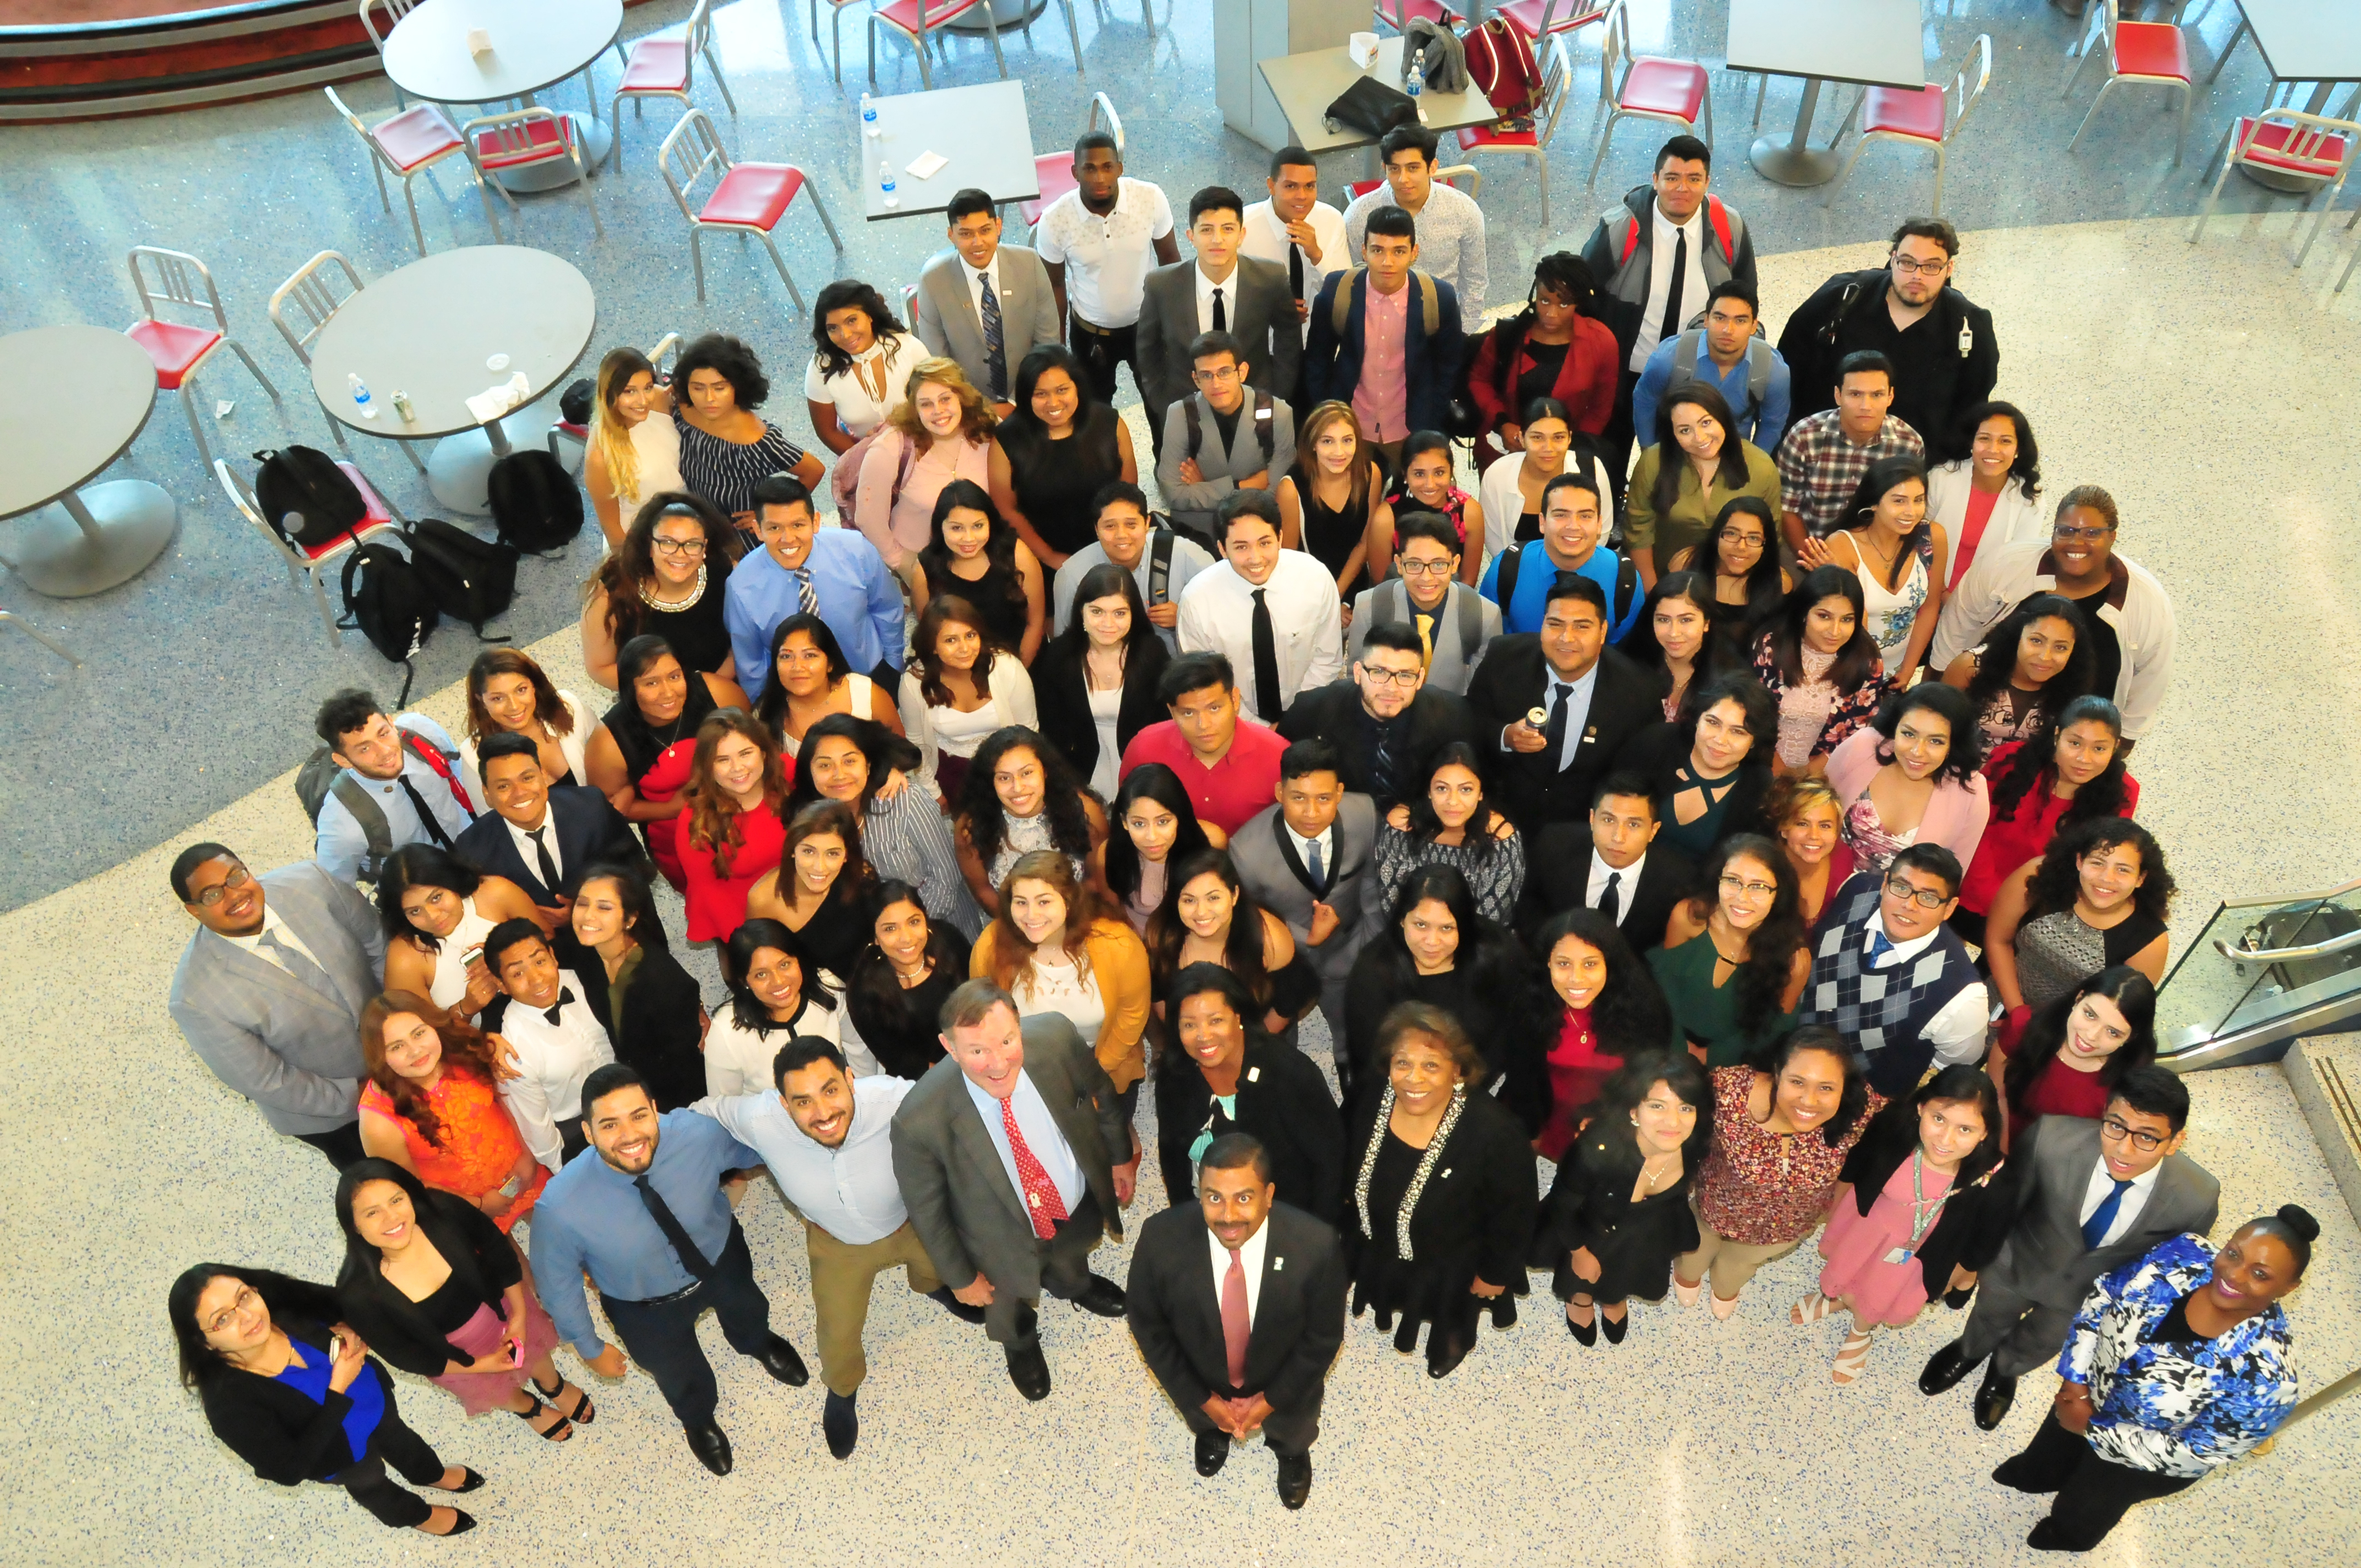 Dsu And Del. Gov. Welcome Dreamers | Delaware State University With Regard To Delaware State University Dreamers